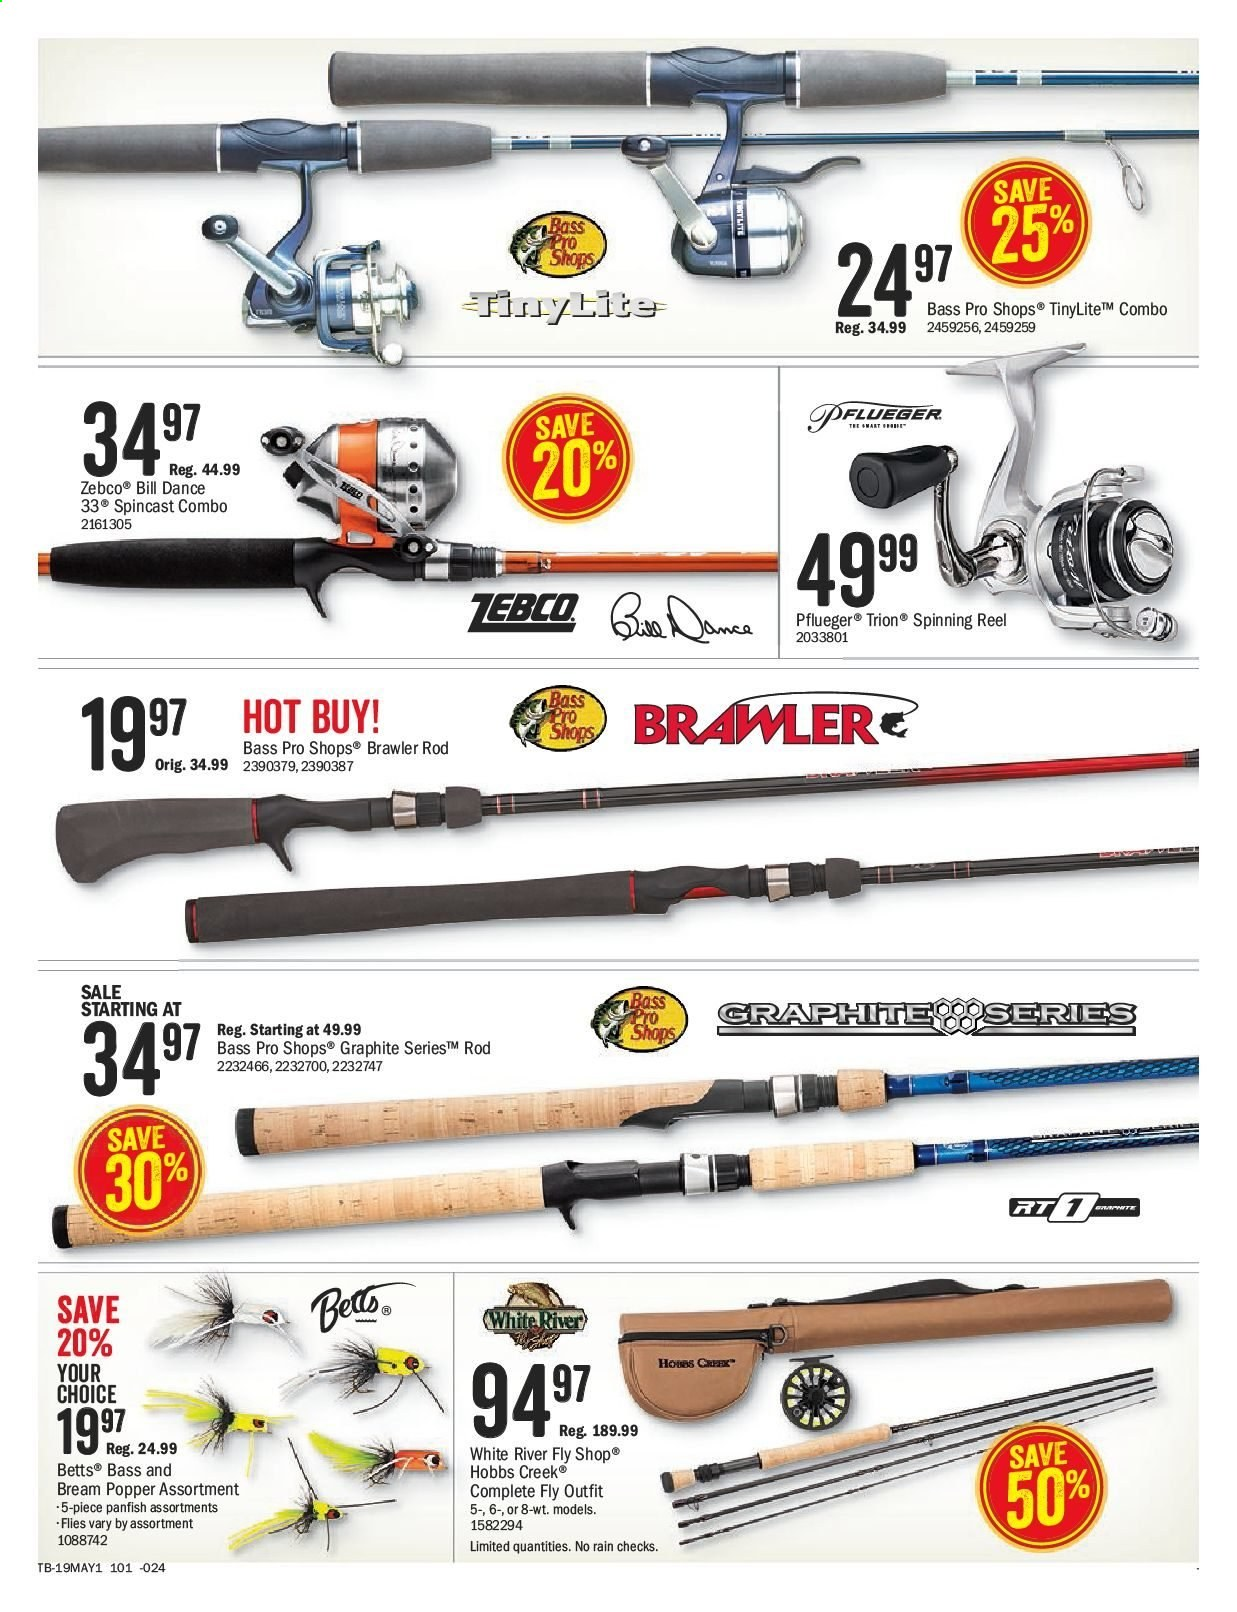 Bass Pro Shops Flyer  - April 26, 2019 - May 12, 2019. Page 19.